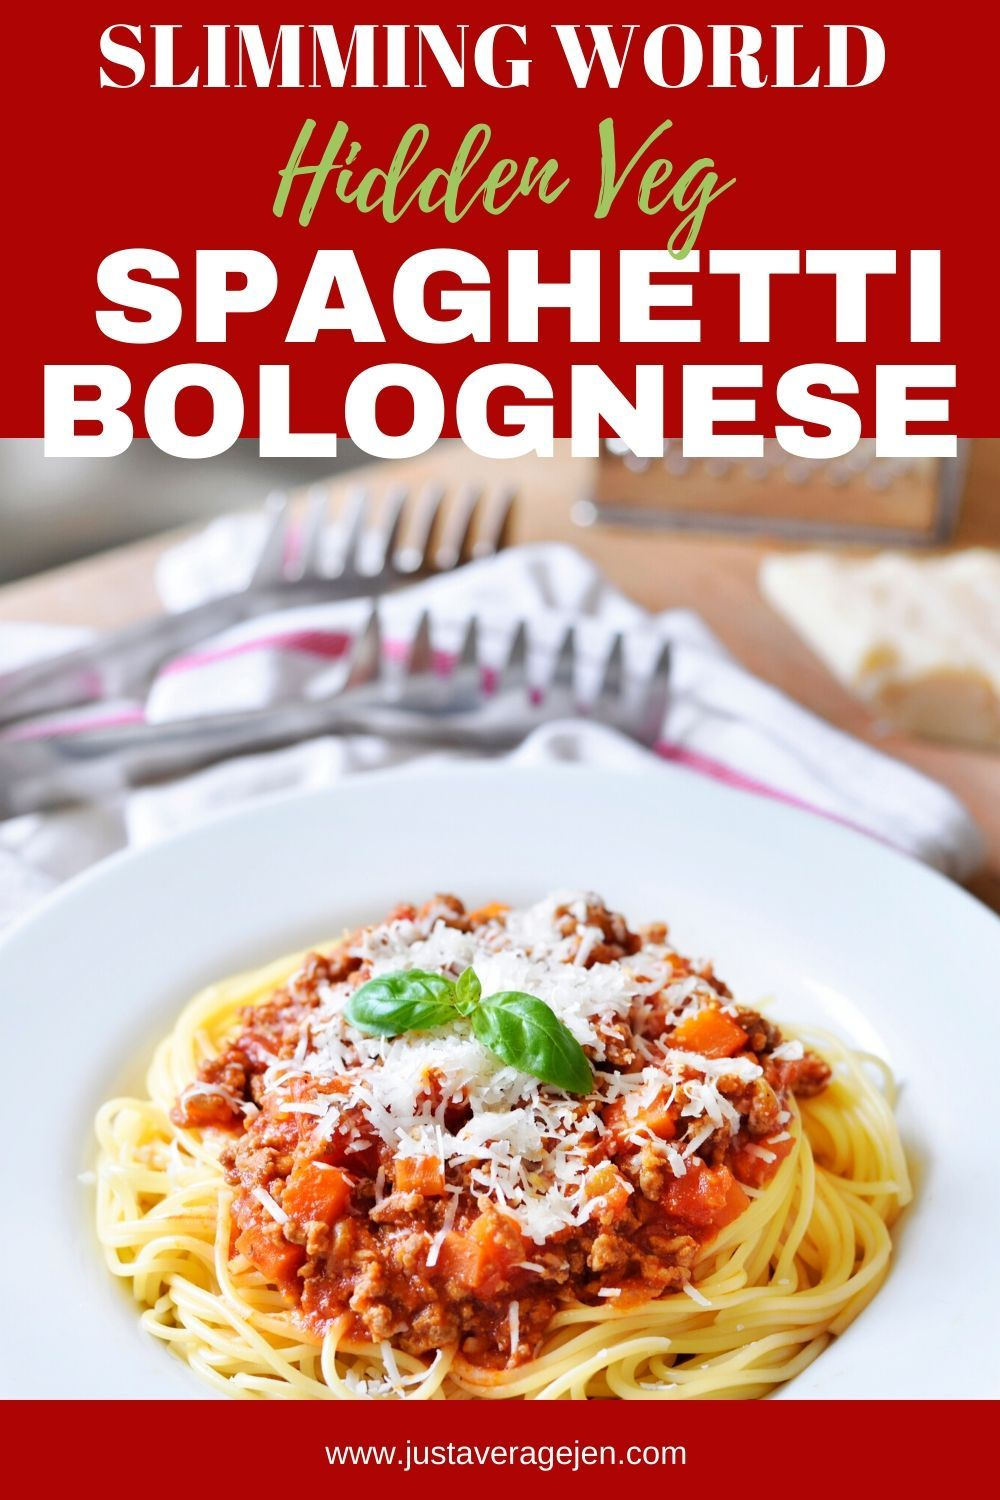 How To Make Spaghetti Bolognese With Hidden Vegetables Recipe In 2020 Vegetable Spaghetti Recipes Hidden Vegetables